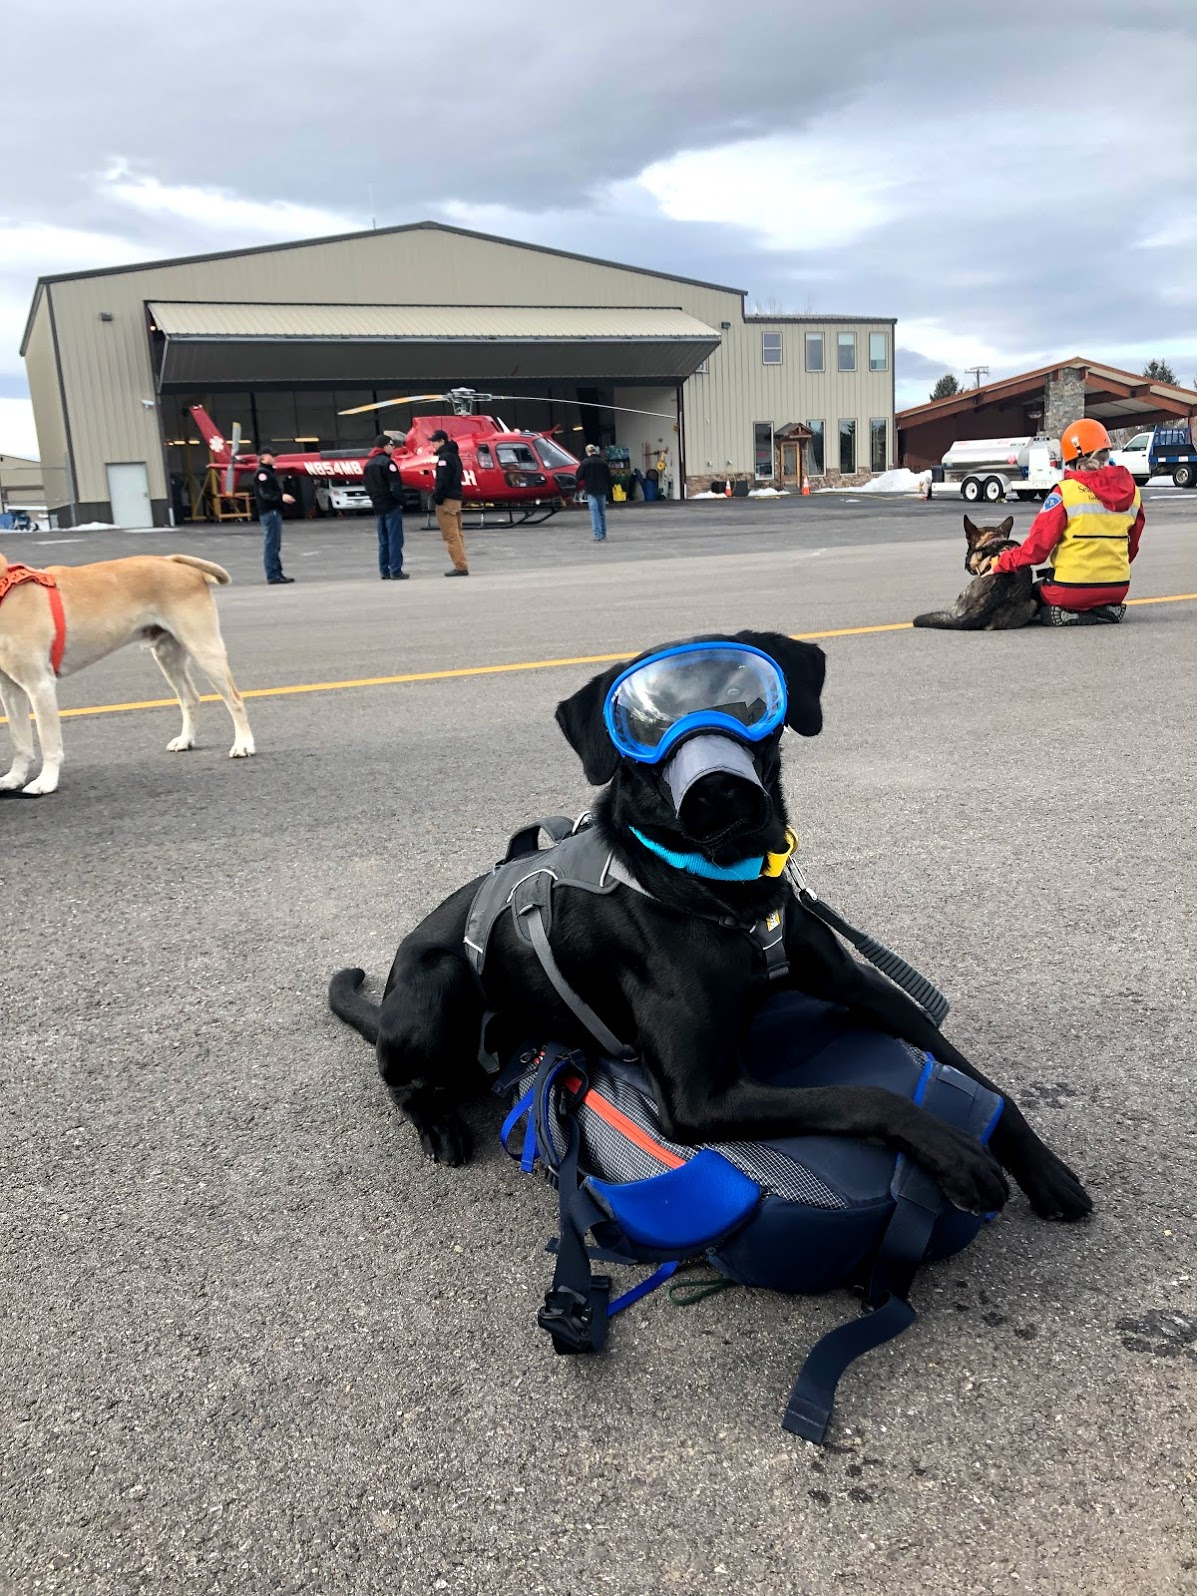 K9 Yodel (in training) shows off his personal protective equipment